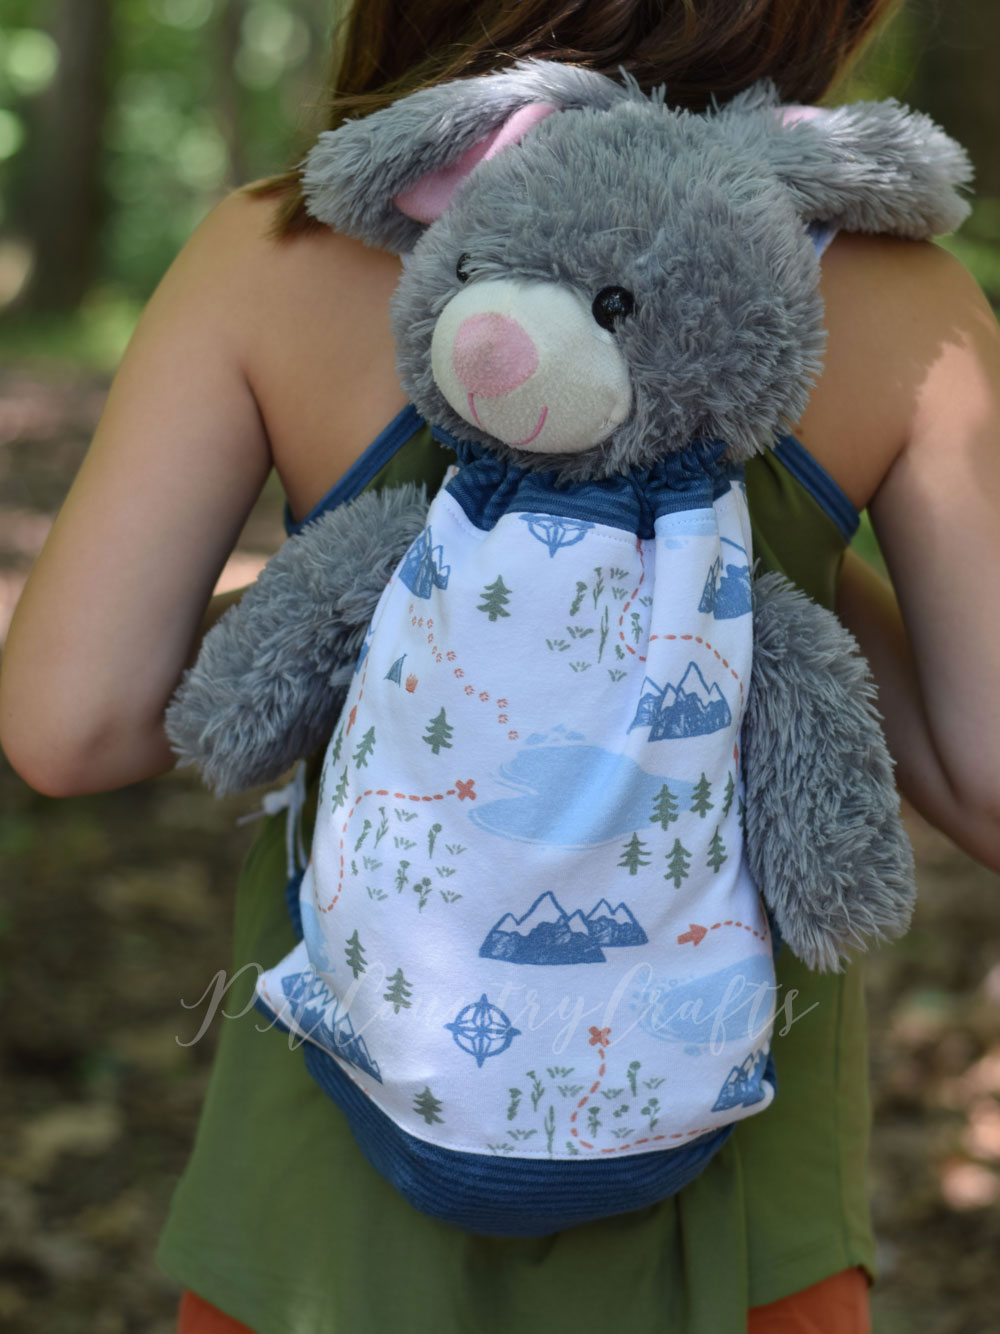 Pajama bag with arm holes for stuffed animals- perfect to pack for a sleepover or camping trip!